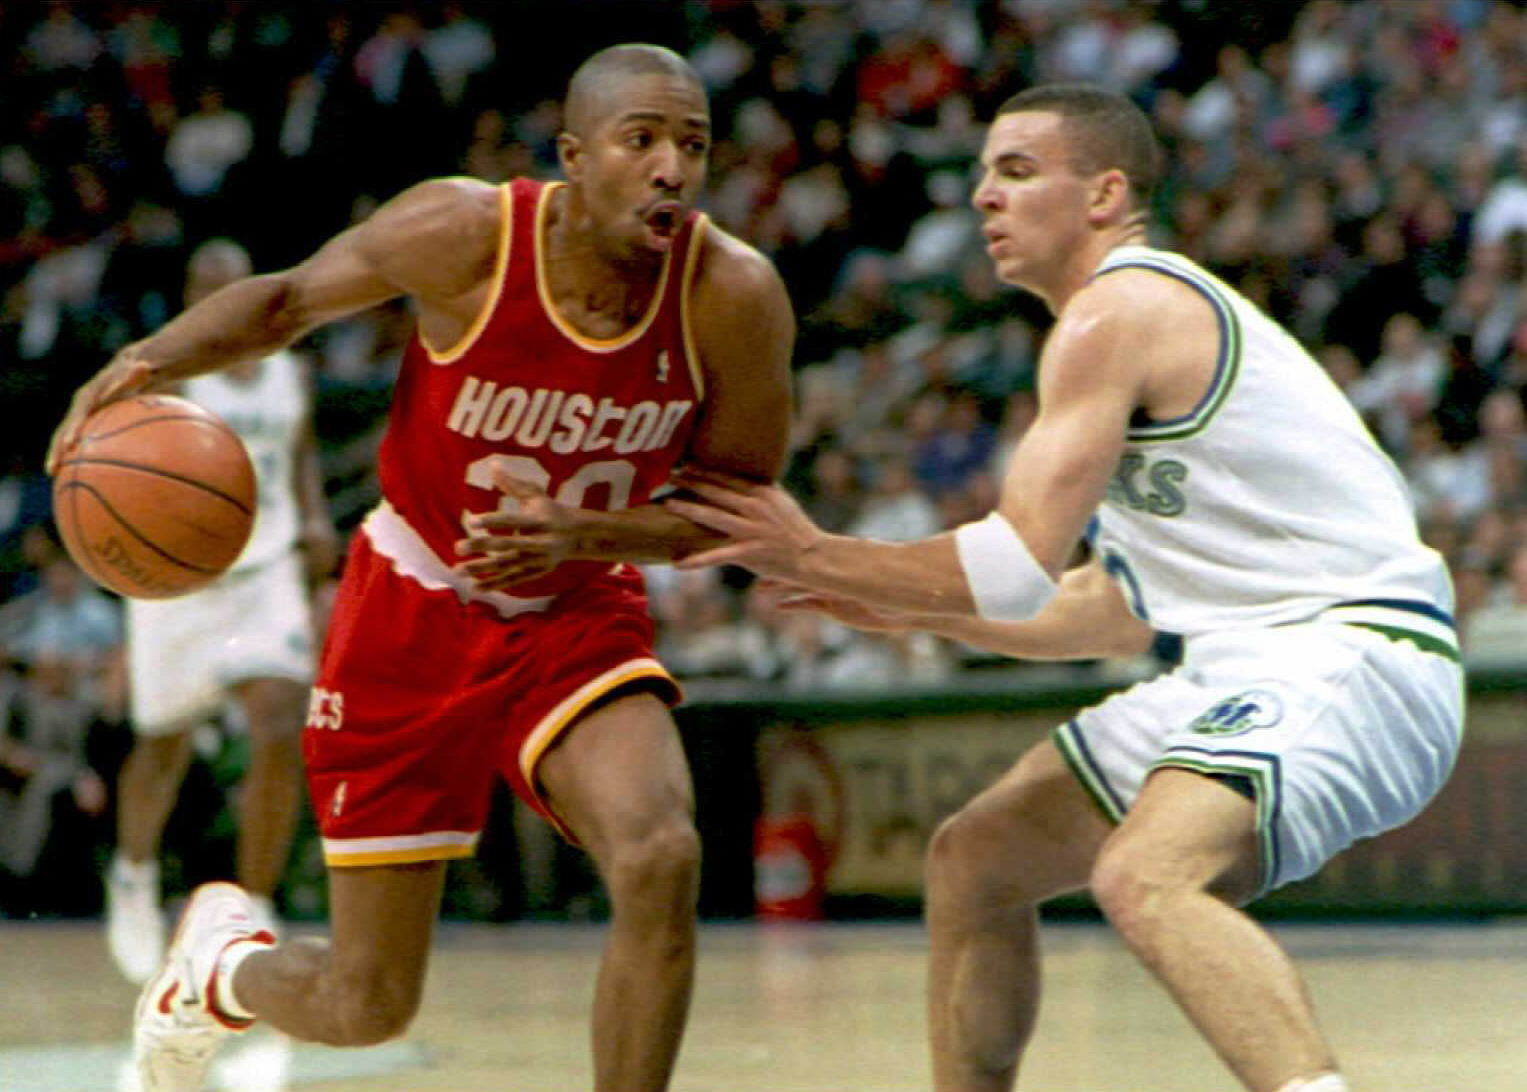 Kenny Smith dribbles the ball for the Houston Rockets